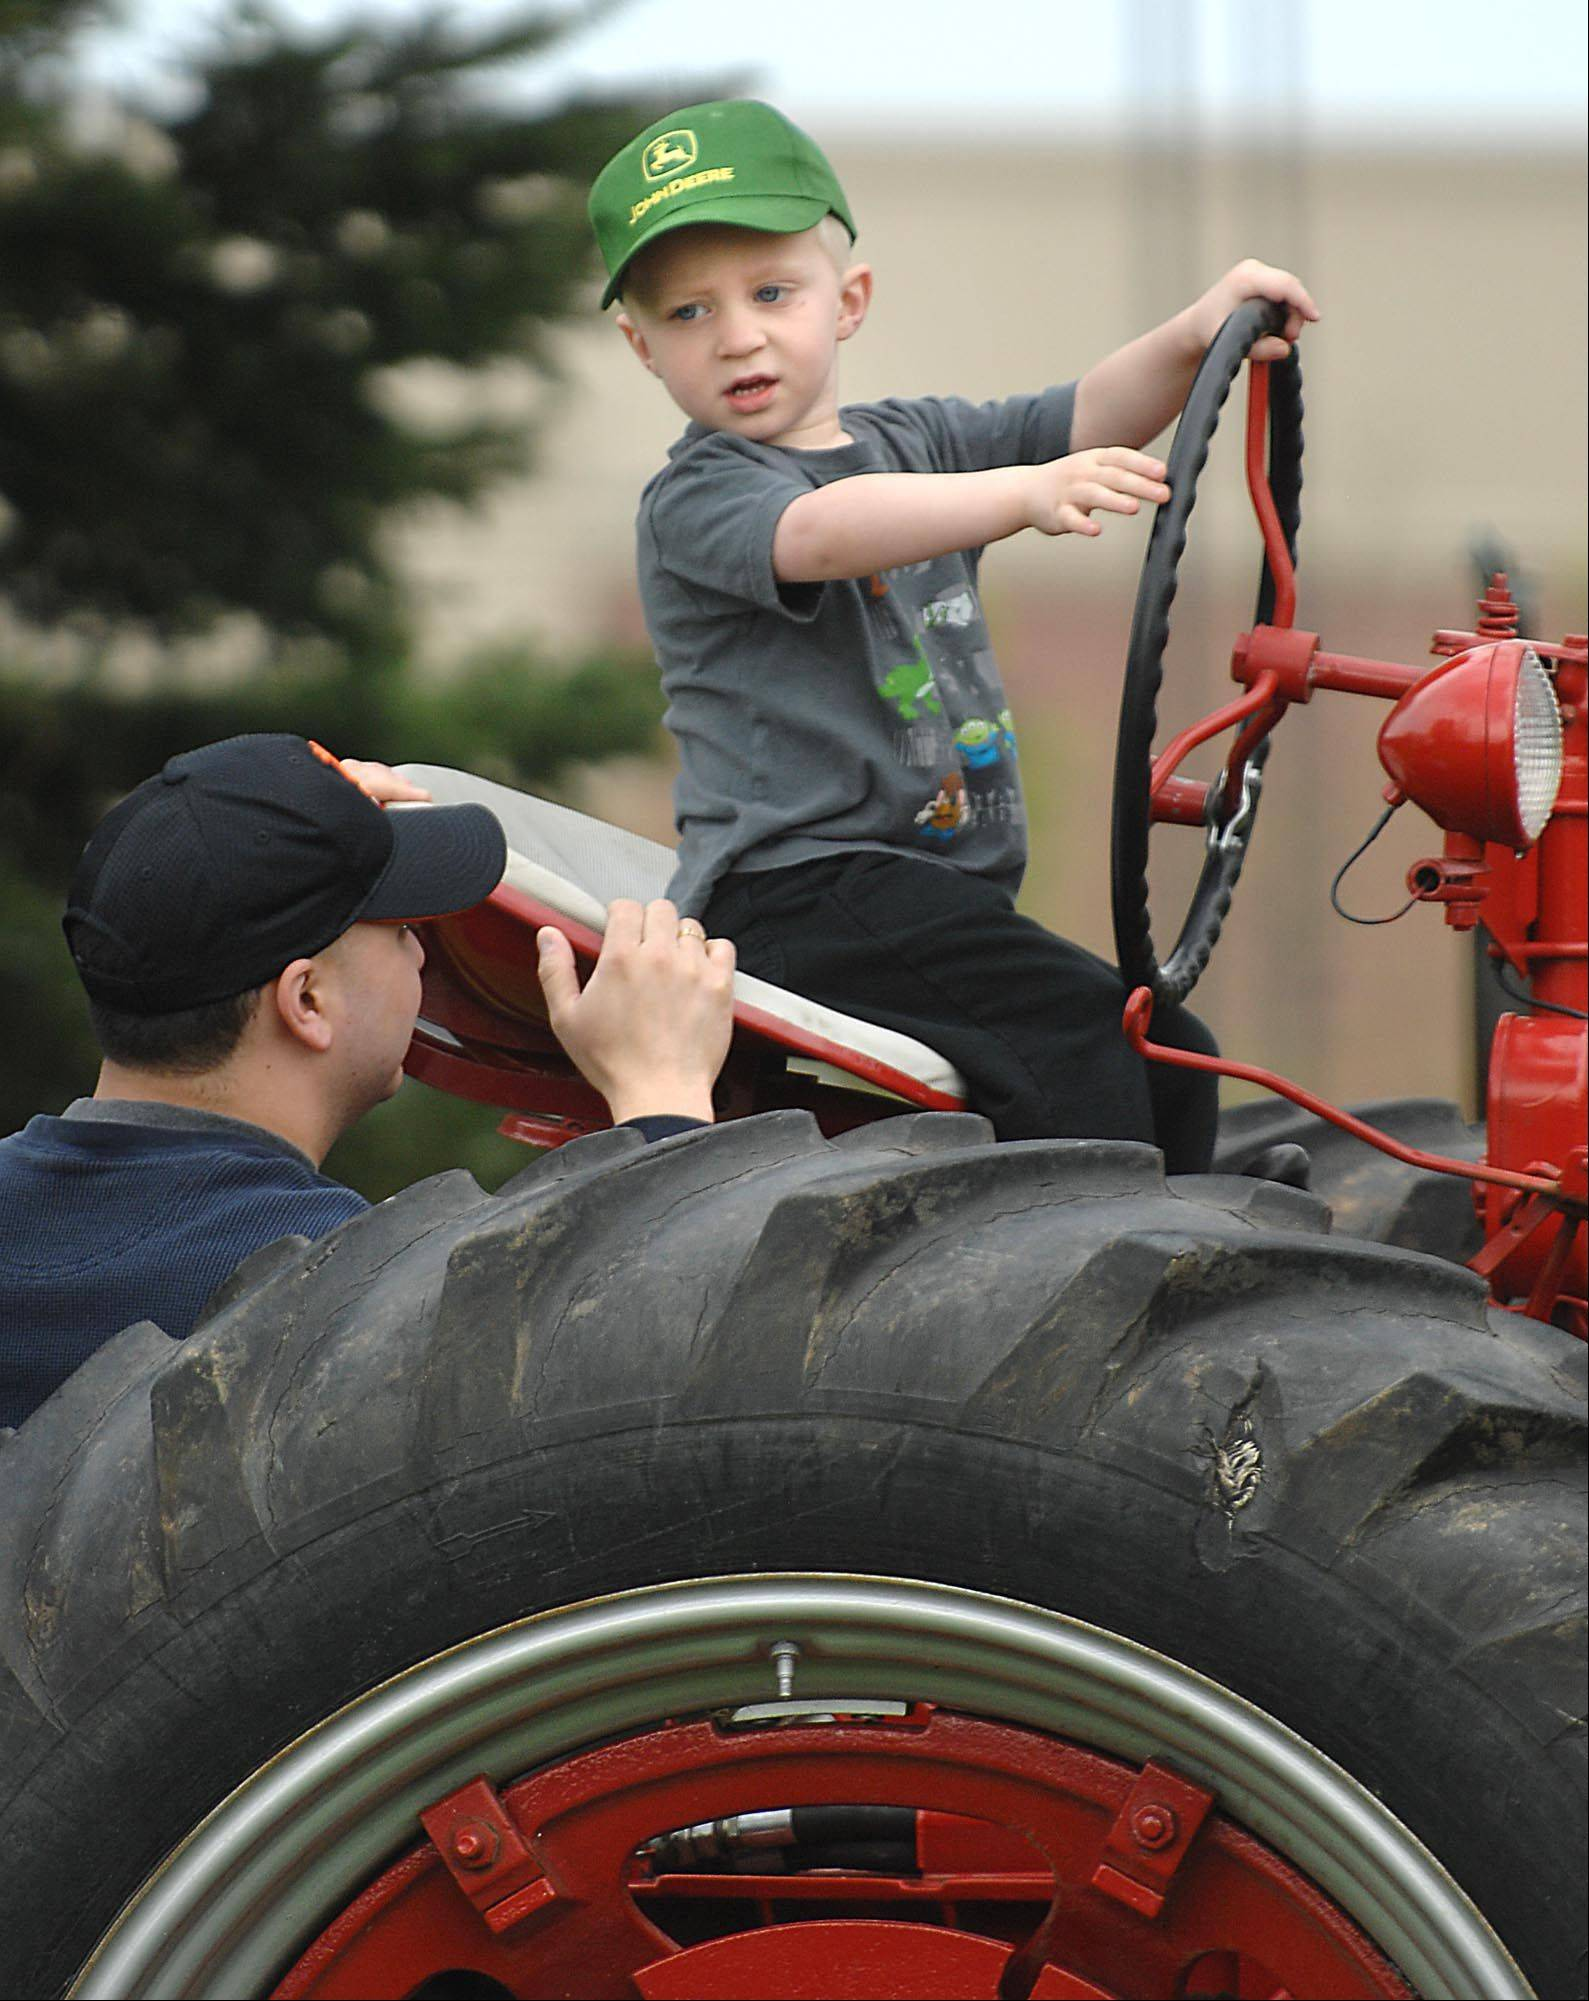 Sebastian Gruener, 3, sits on an antique Farmall tractor Sunday at the Kane County Farm Bureau's annual Touch-A-Tractor event on Randall Road in St. Charles. He was with his mother Coreen of Batavia.